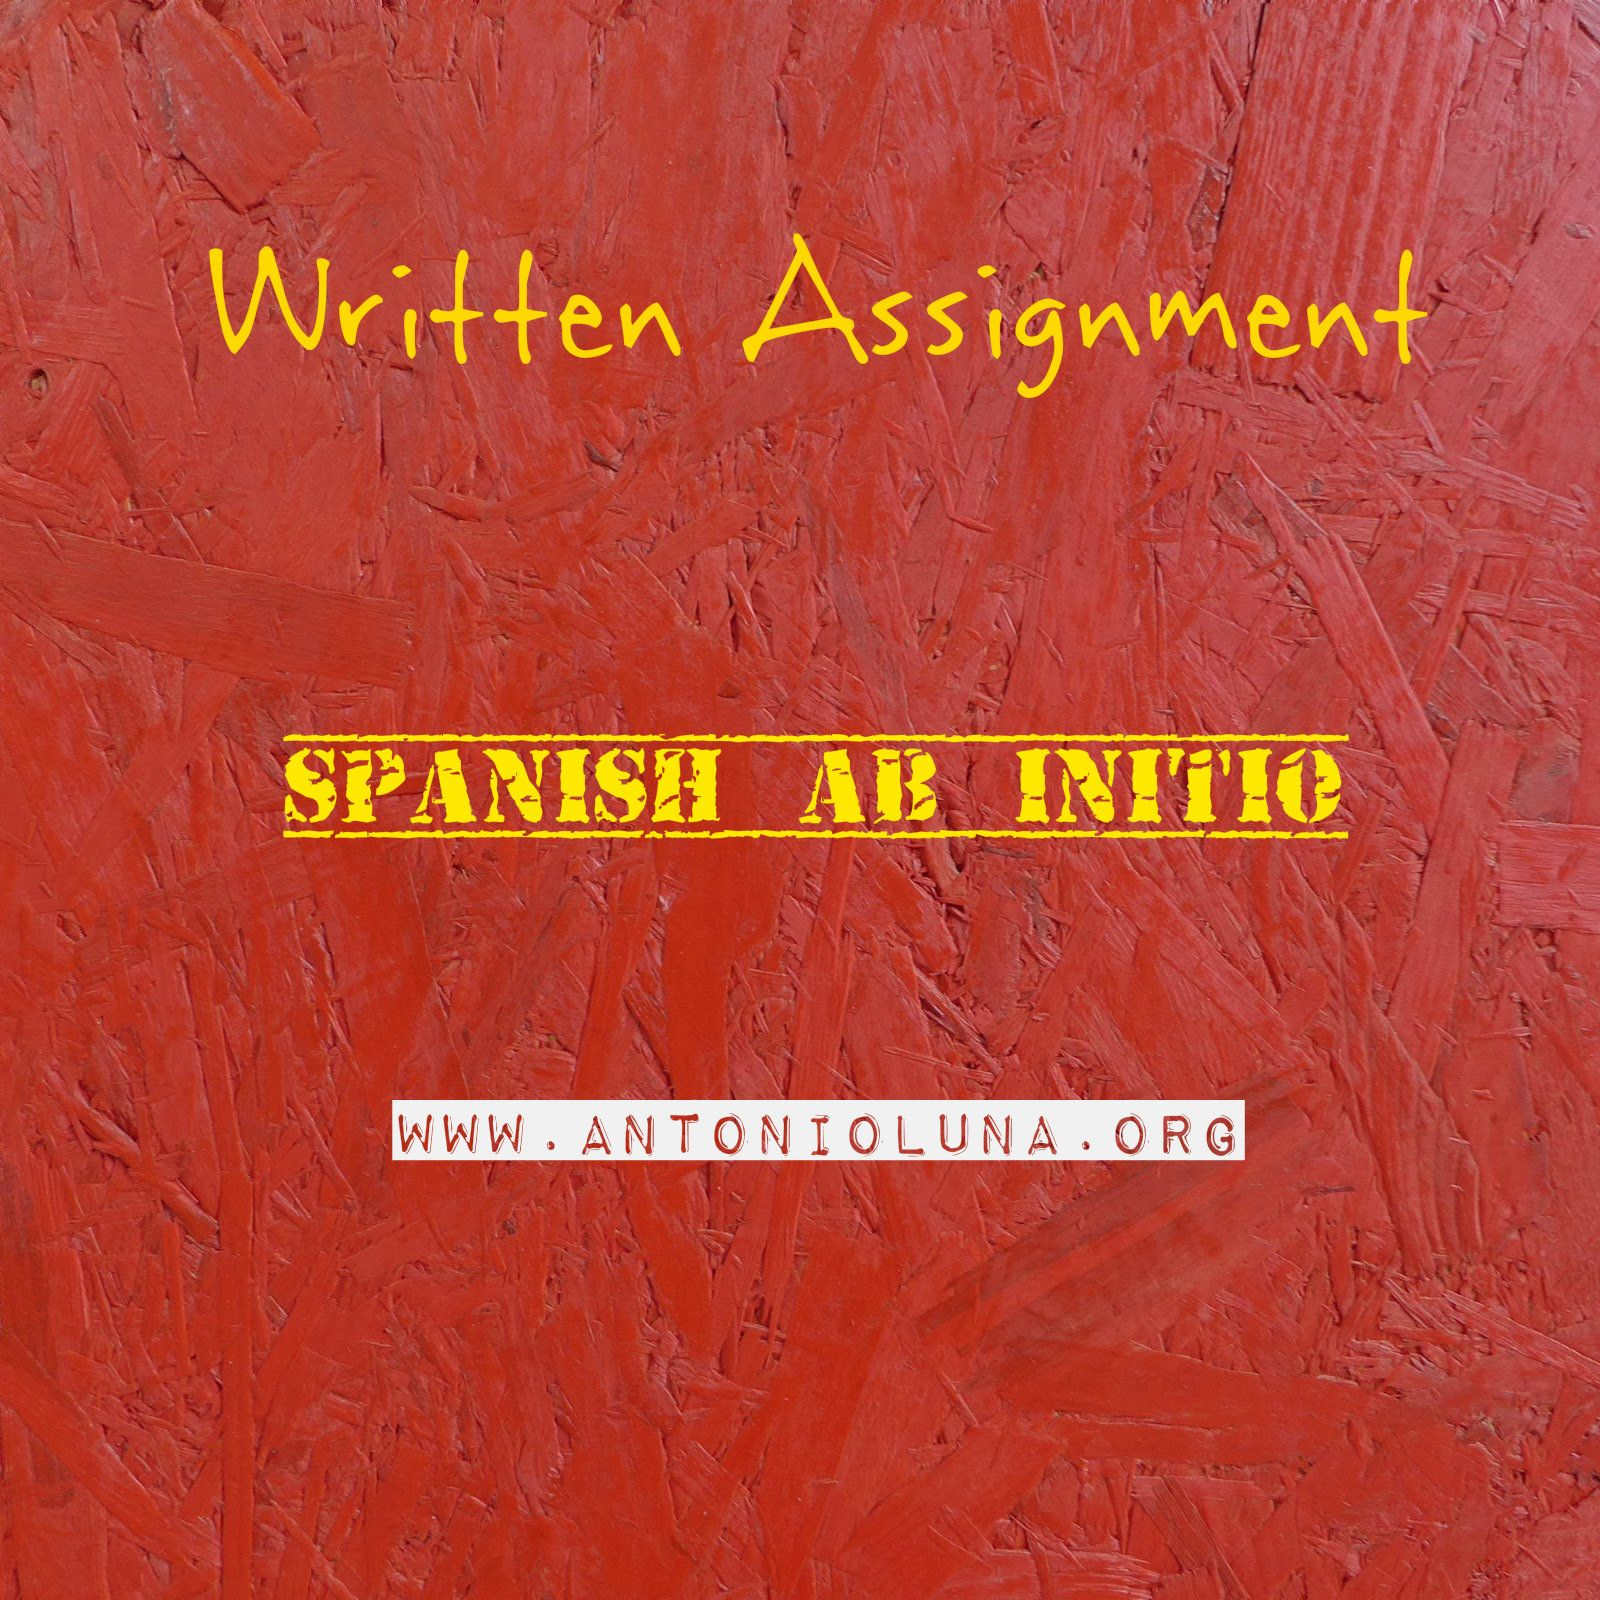 written assignment ib spanish The most comprehensive array of grade 7 notes and assessments available online to help you succeed in the ib  learning a language for the ib, ib french written assignment, ib latin written assignment, ib mandarin written assignment, ib solved languages, ways to learn a language 1 comment.